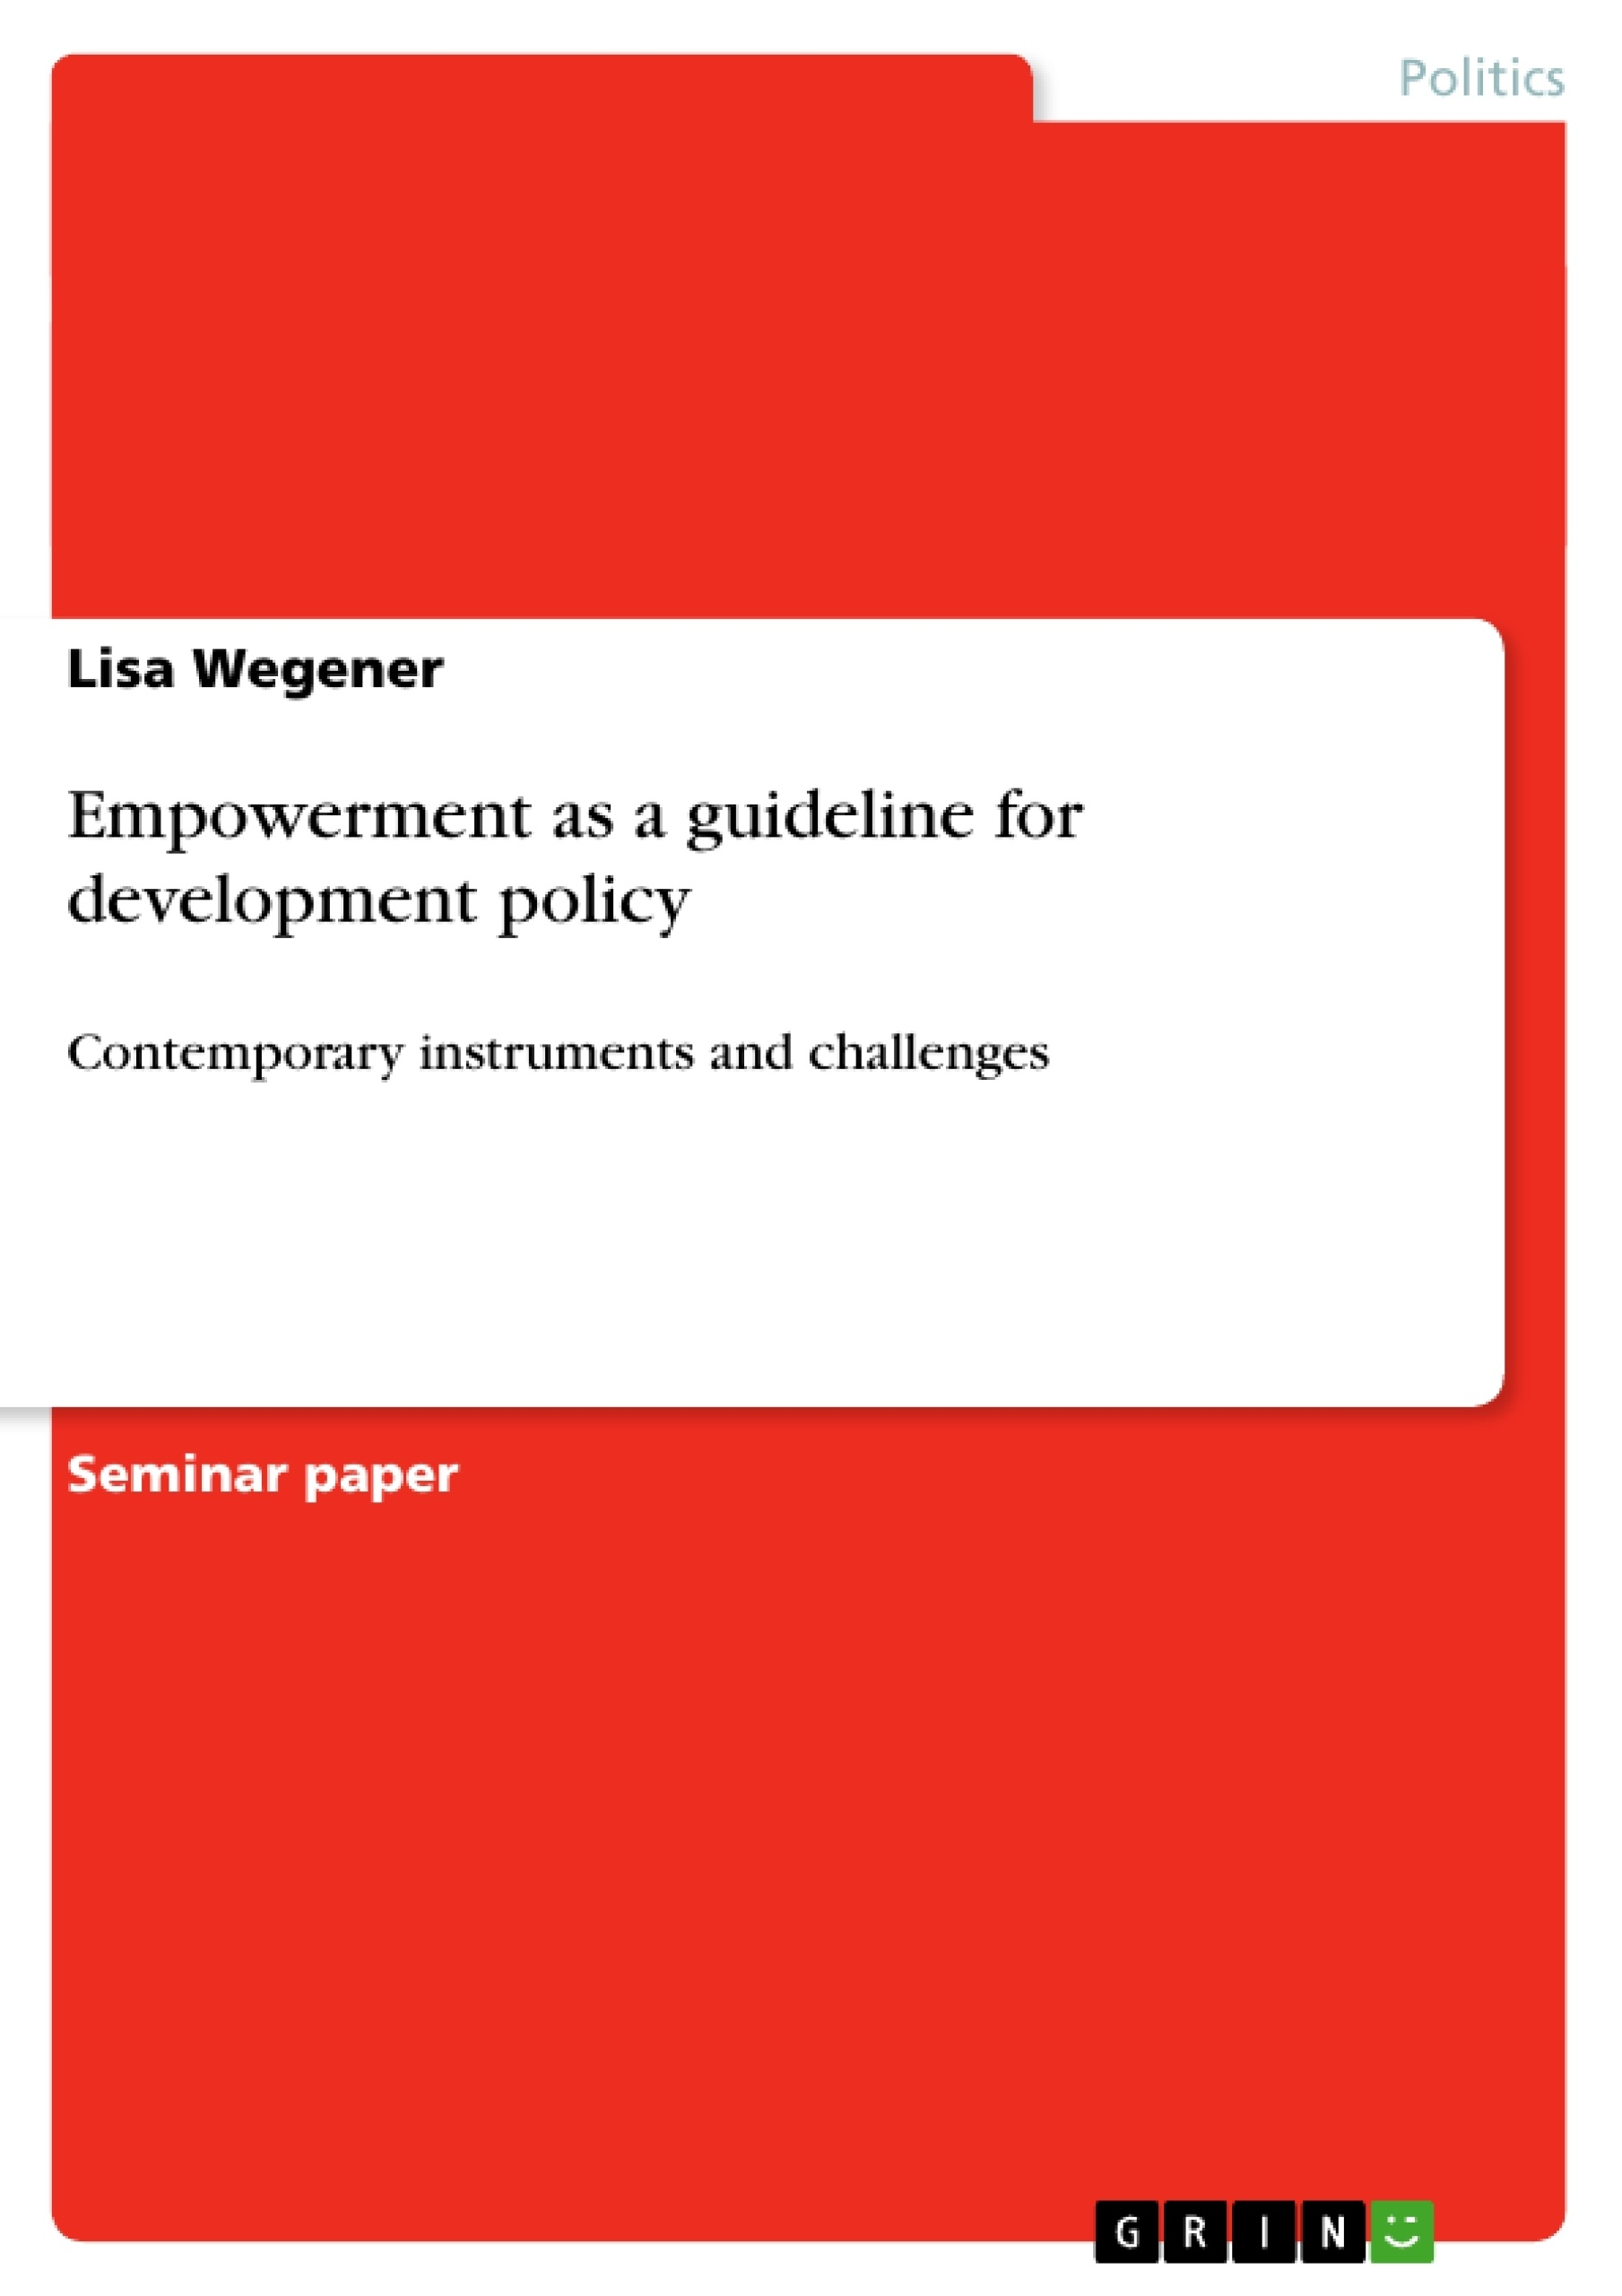 Title: Empowerment as a guideline for development policy